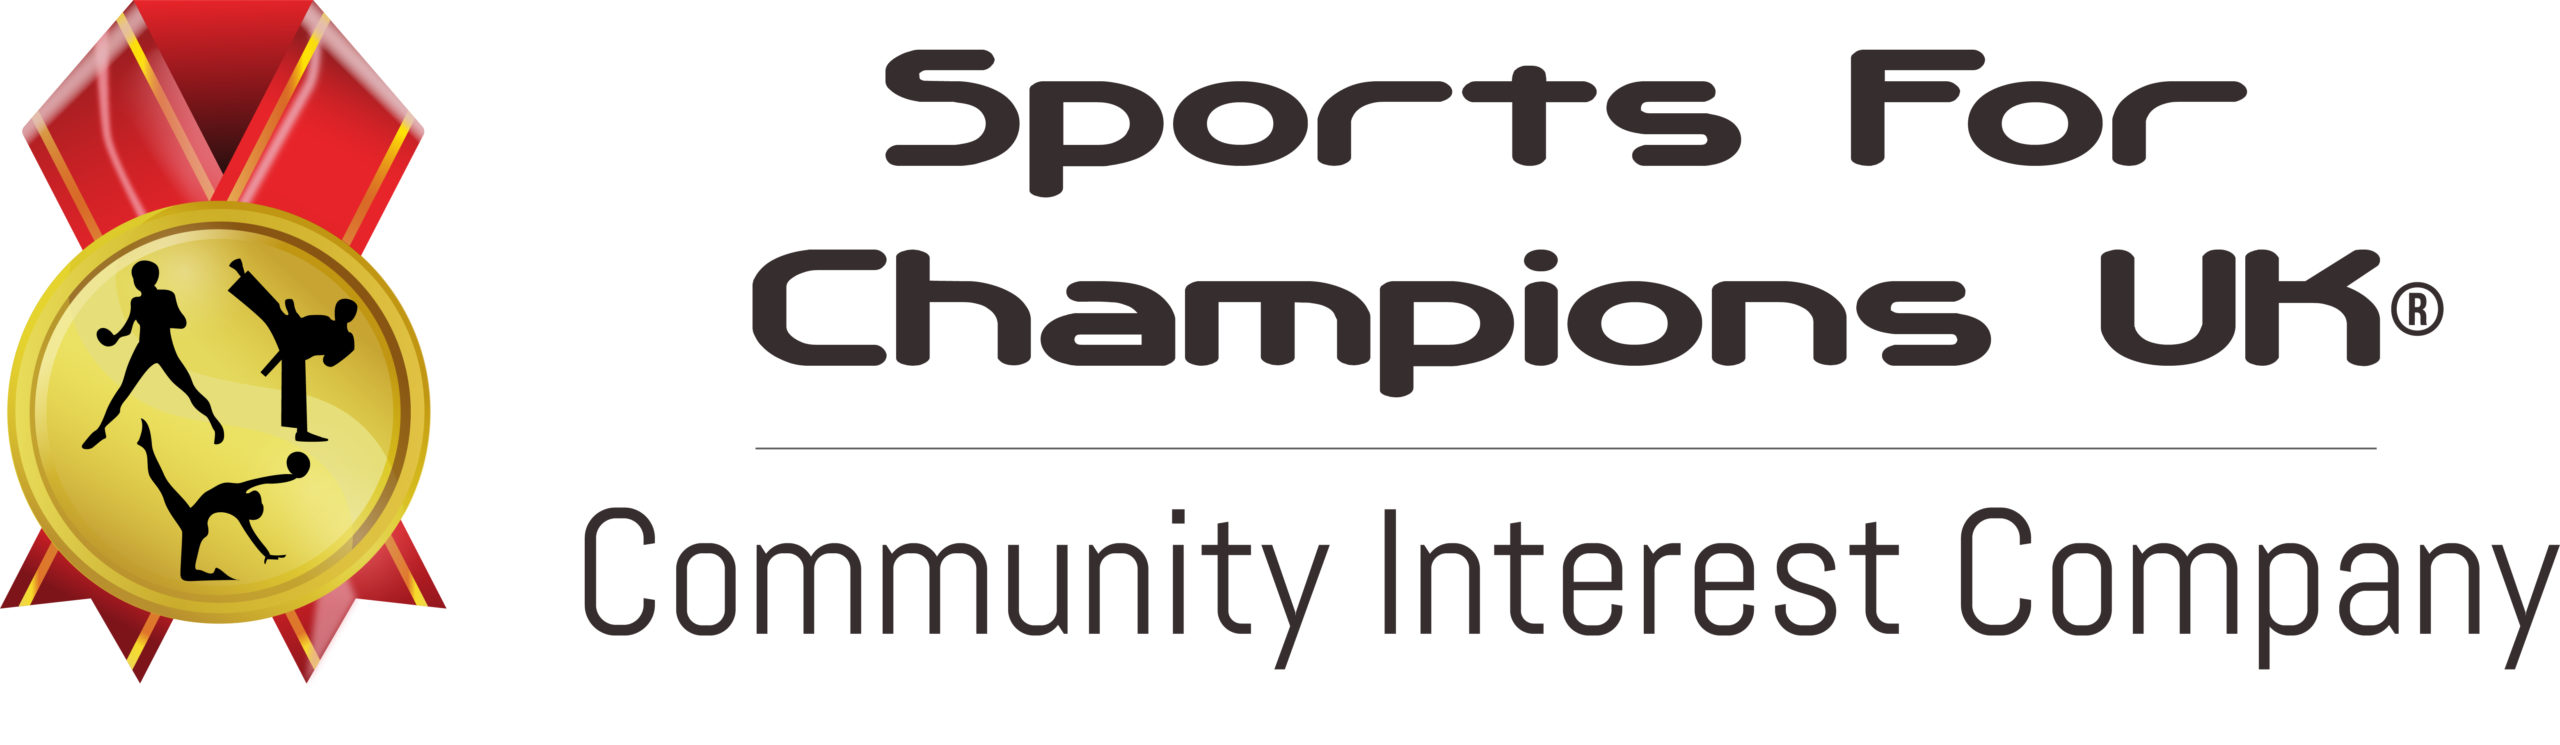 Sports For Champions UK (CIC)